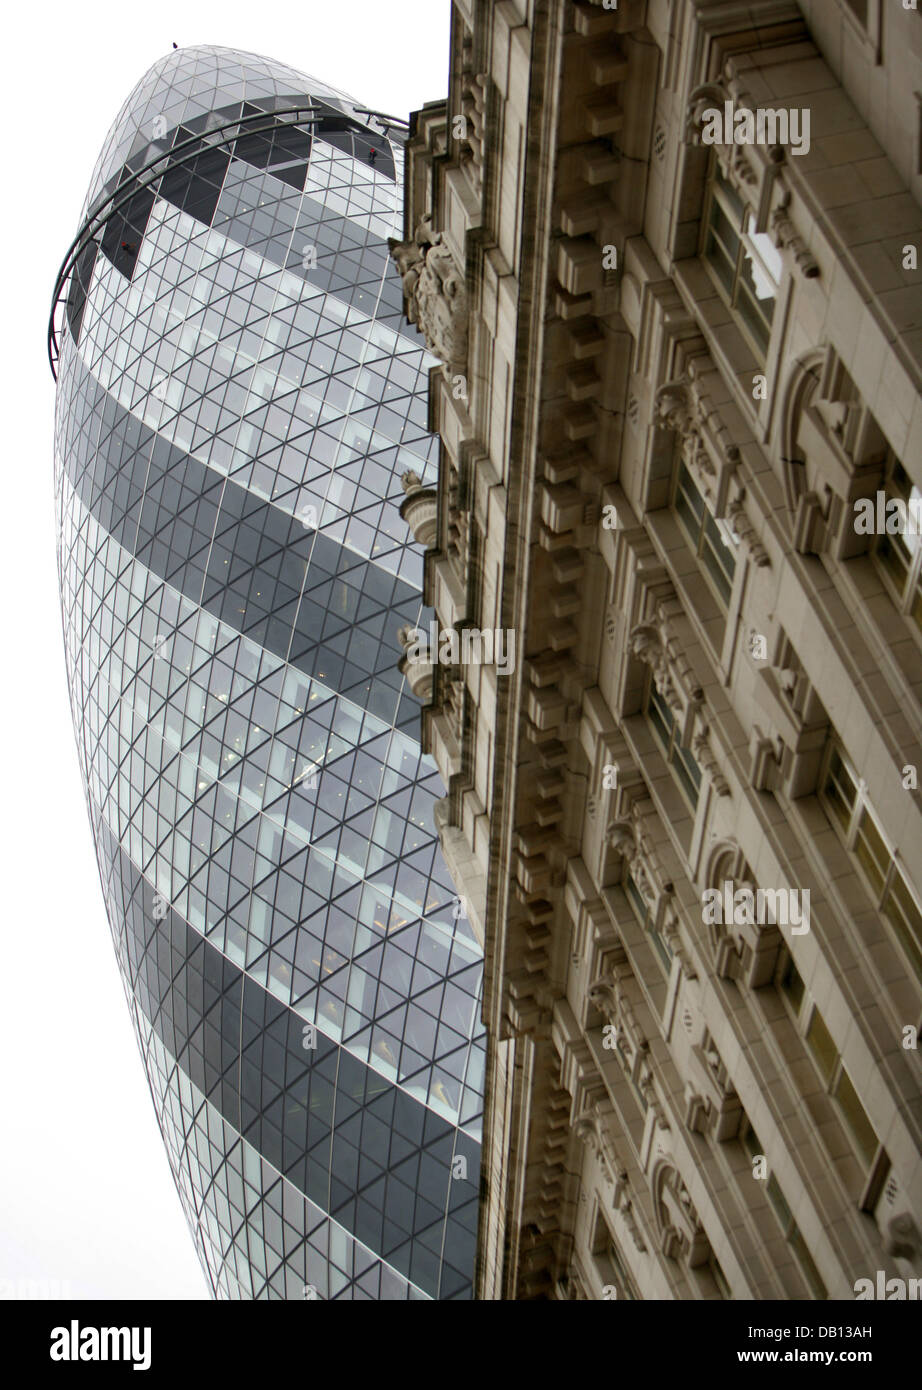 The picture shows the Swiss Re Tower designed by British star architect Sir Norman Forster in London, United Kingdom, - Stock Image